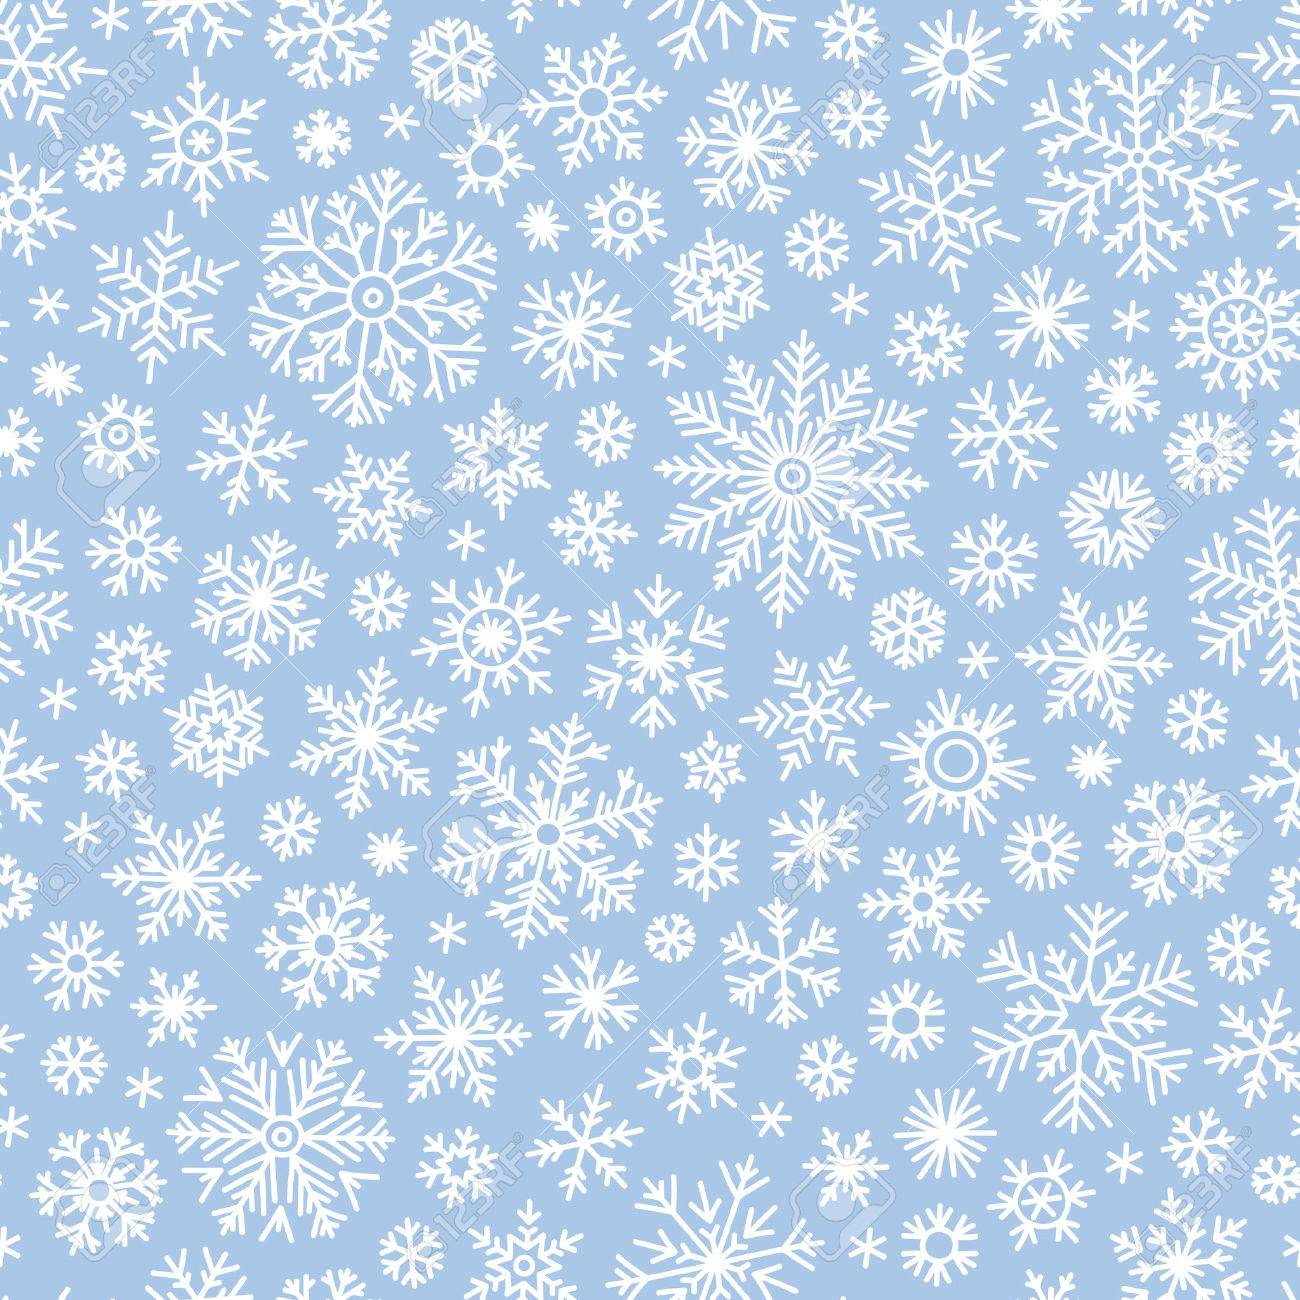 Christmas seamless doodle pattern with snowflakes, vector background - 47728296